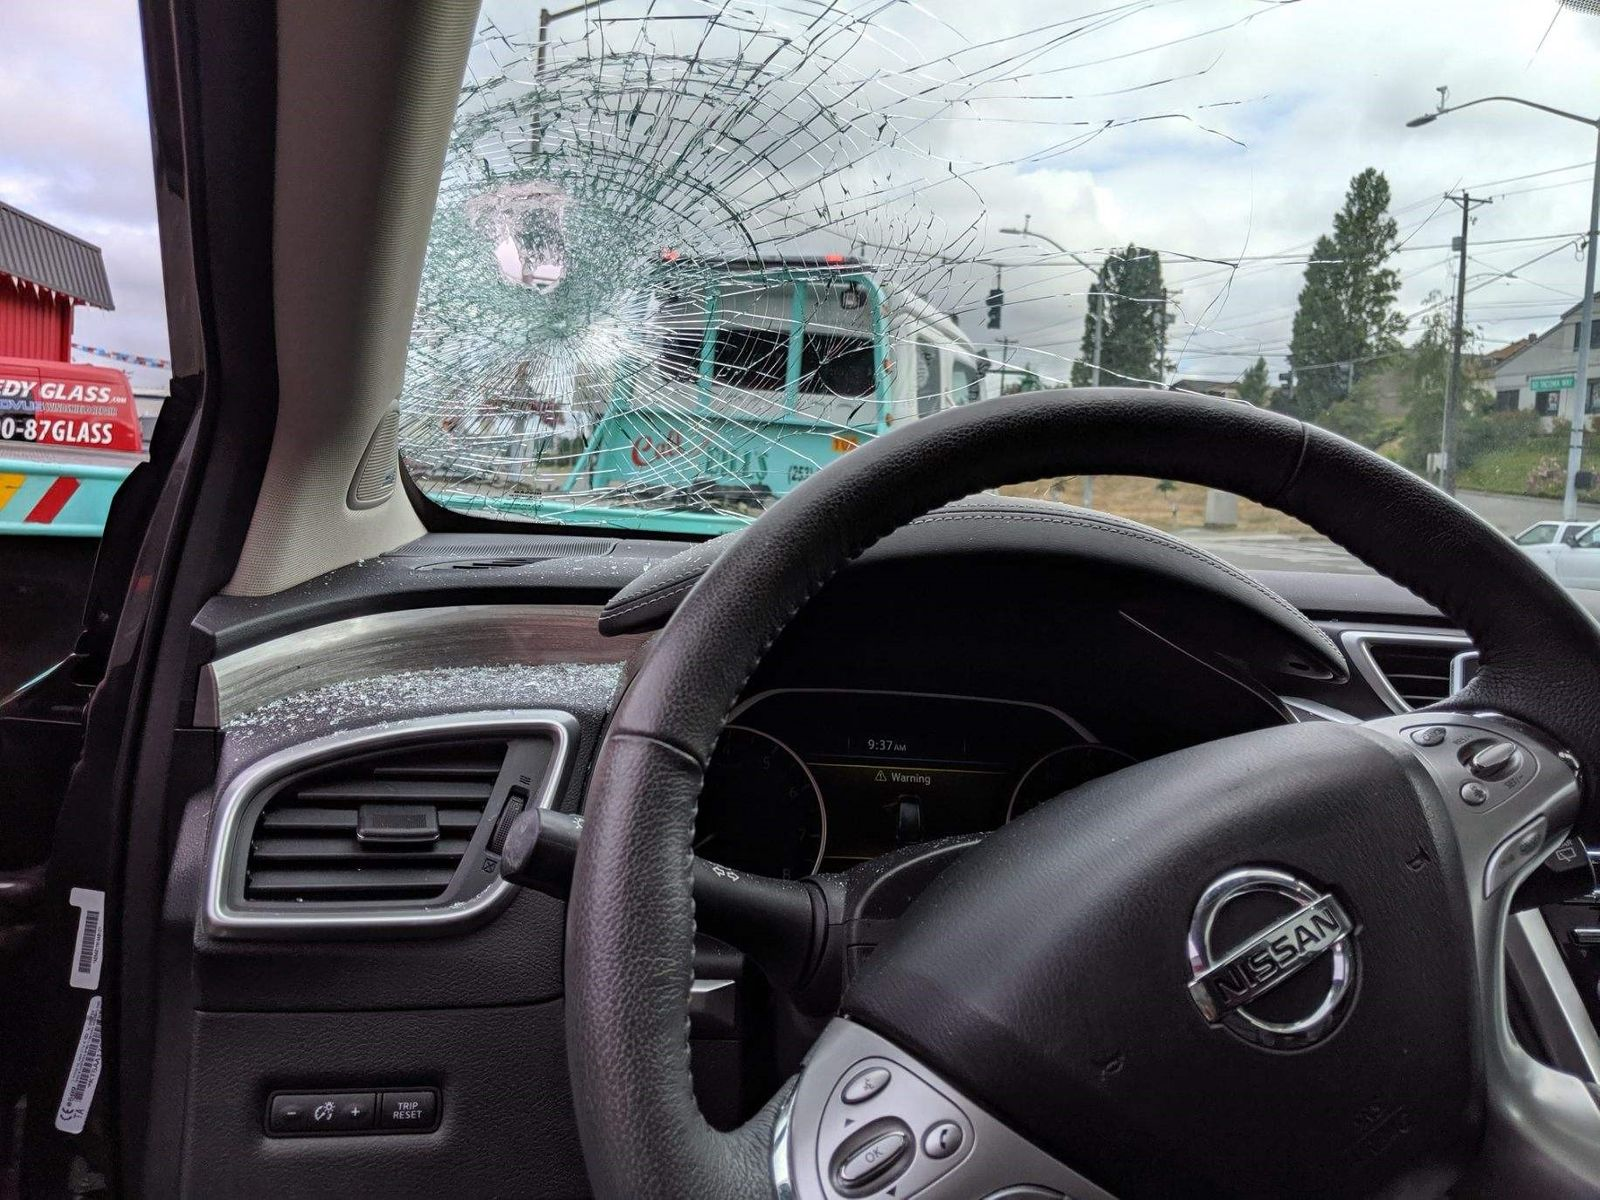 A large piece of metal tubing smashes into a driver's windshield in Tacoma (Photo: Marc Ross)